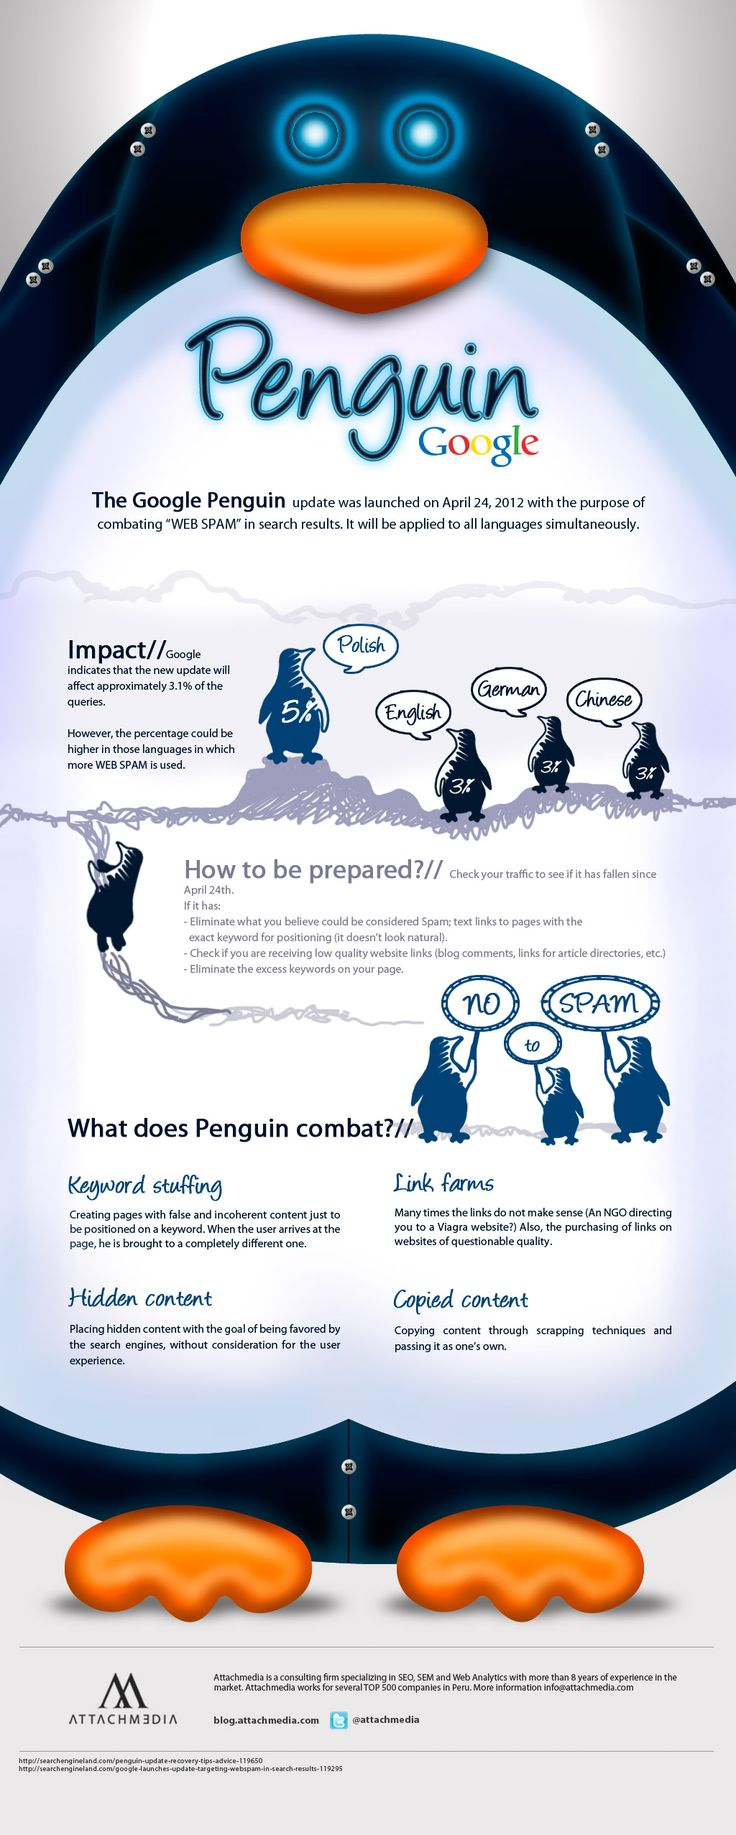 Google Penguin Update!